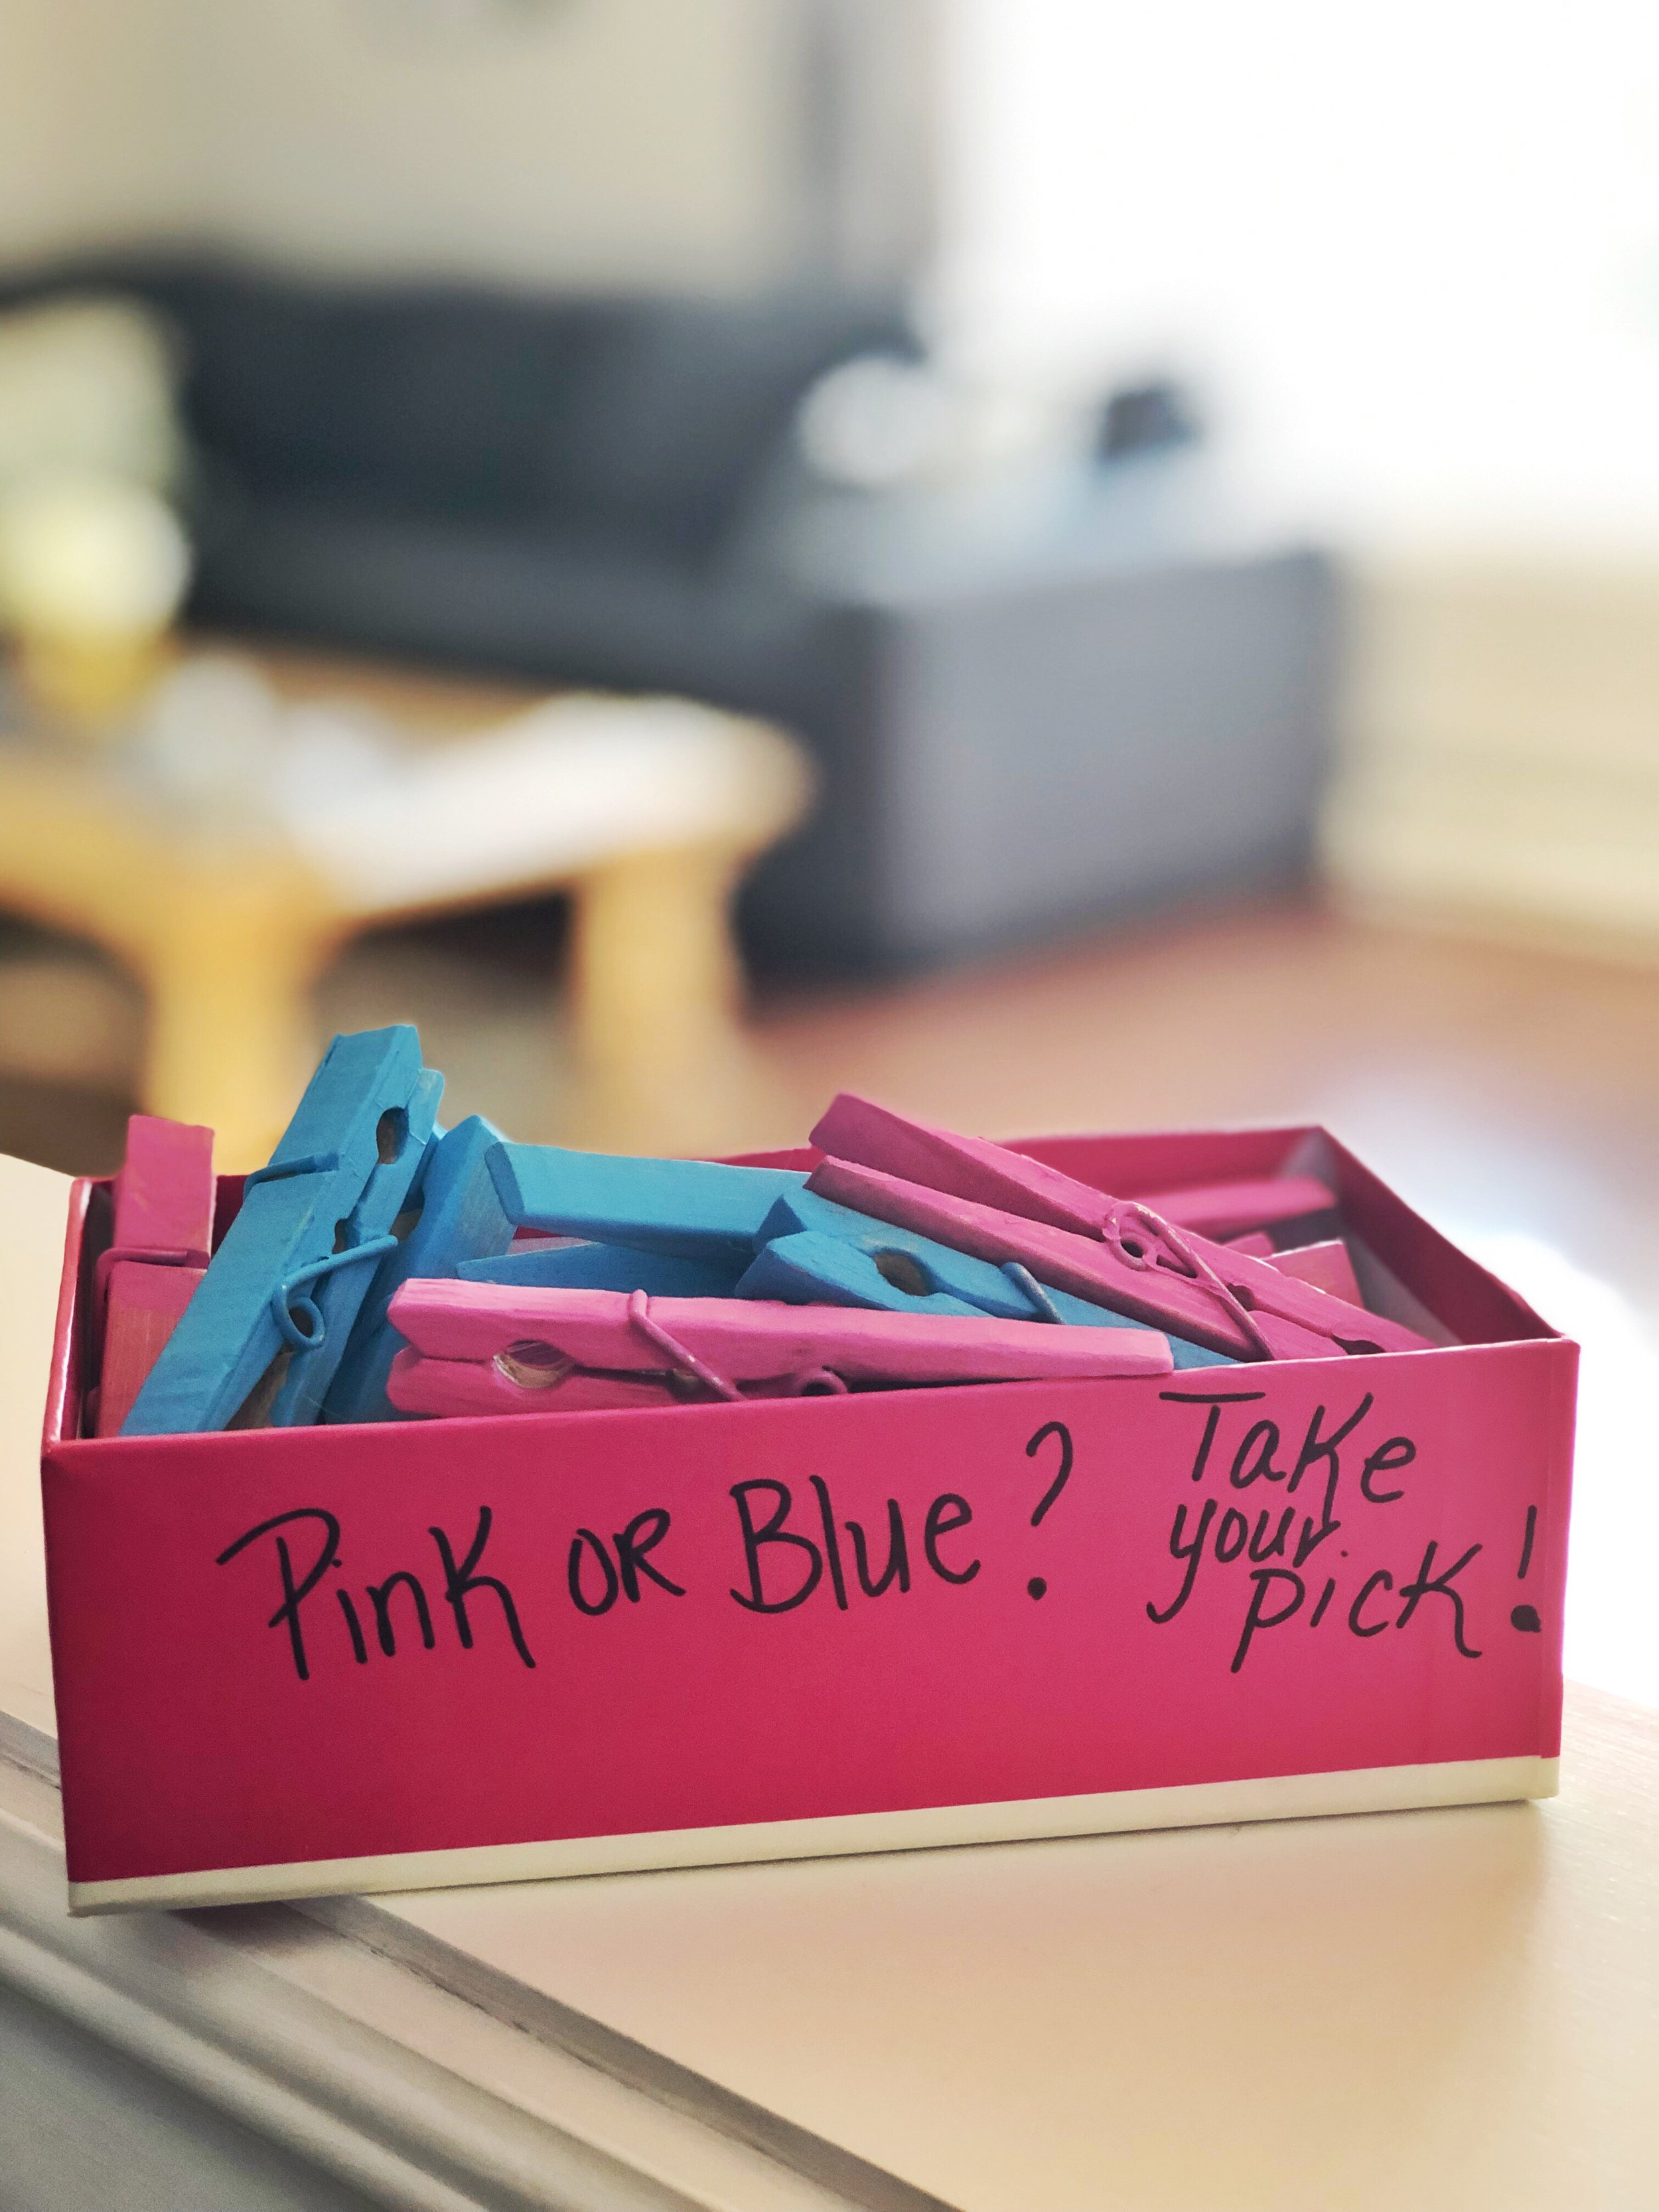 Genderreveal clothespins